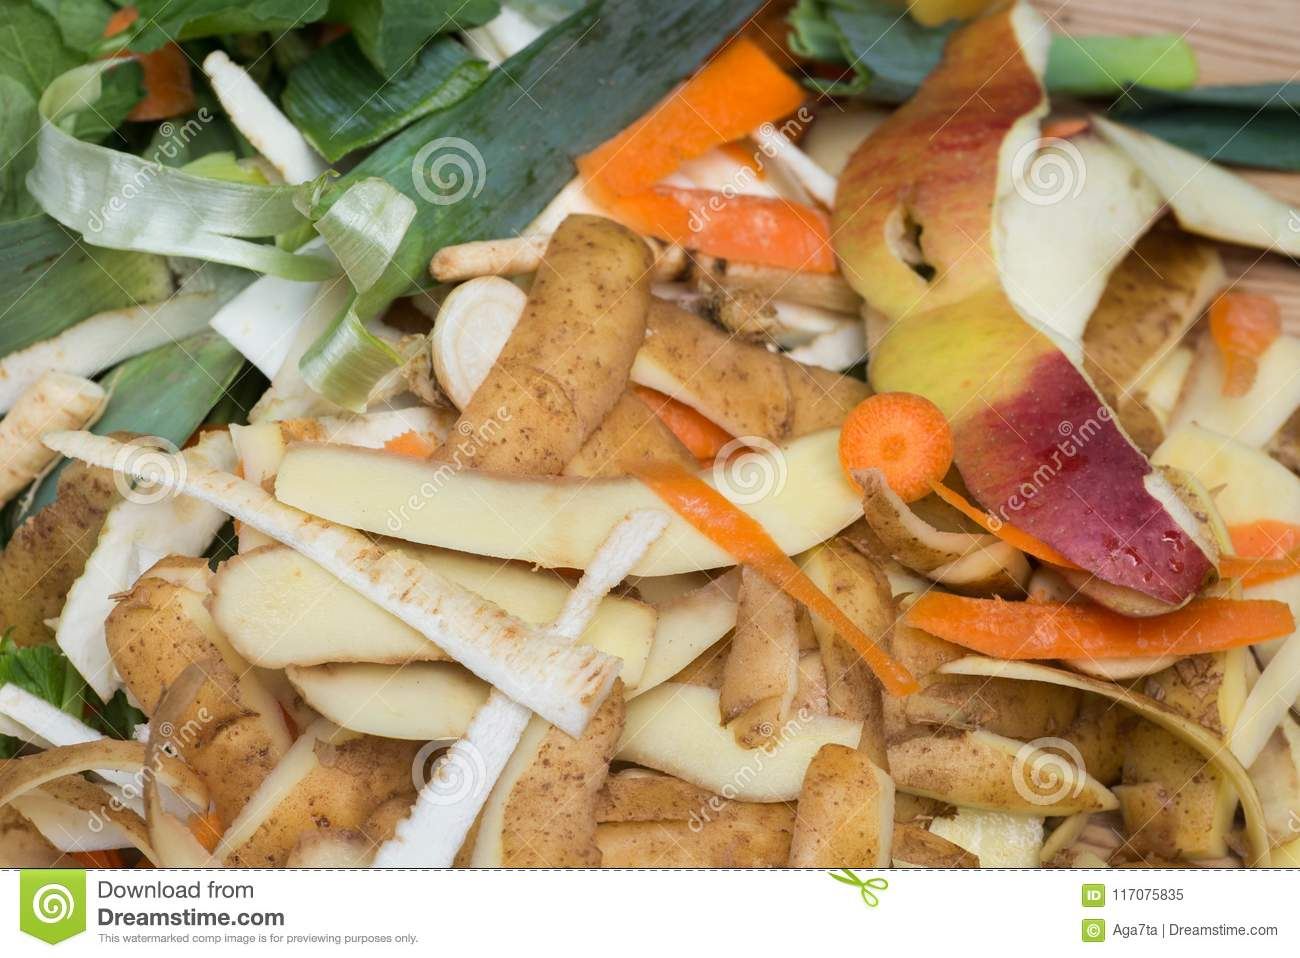 Rotting kitchen fruits and vegetable waste for compost